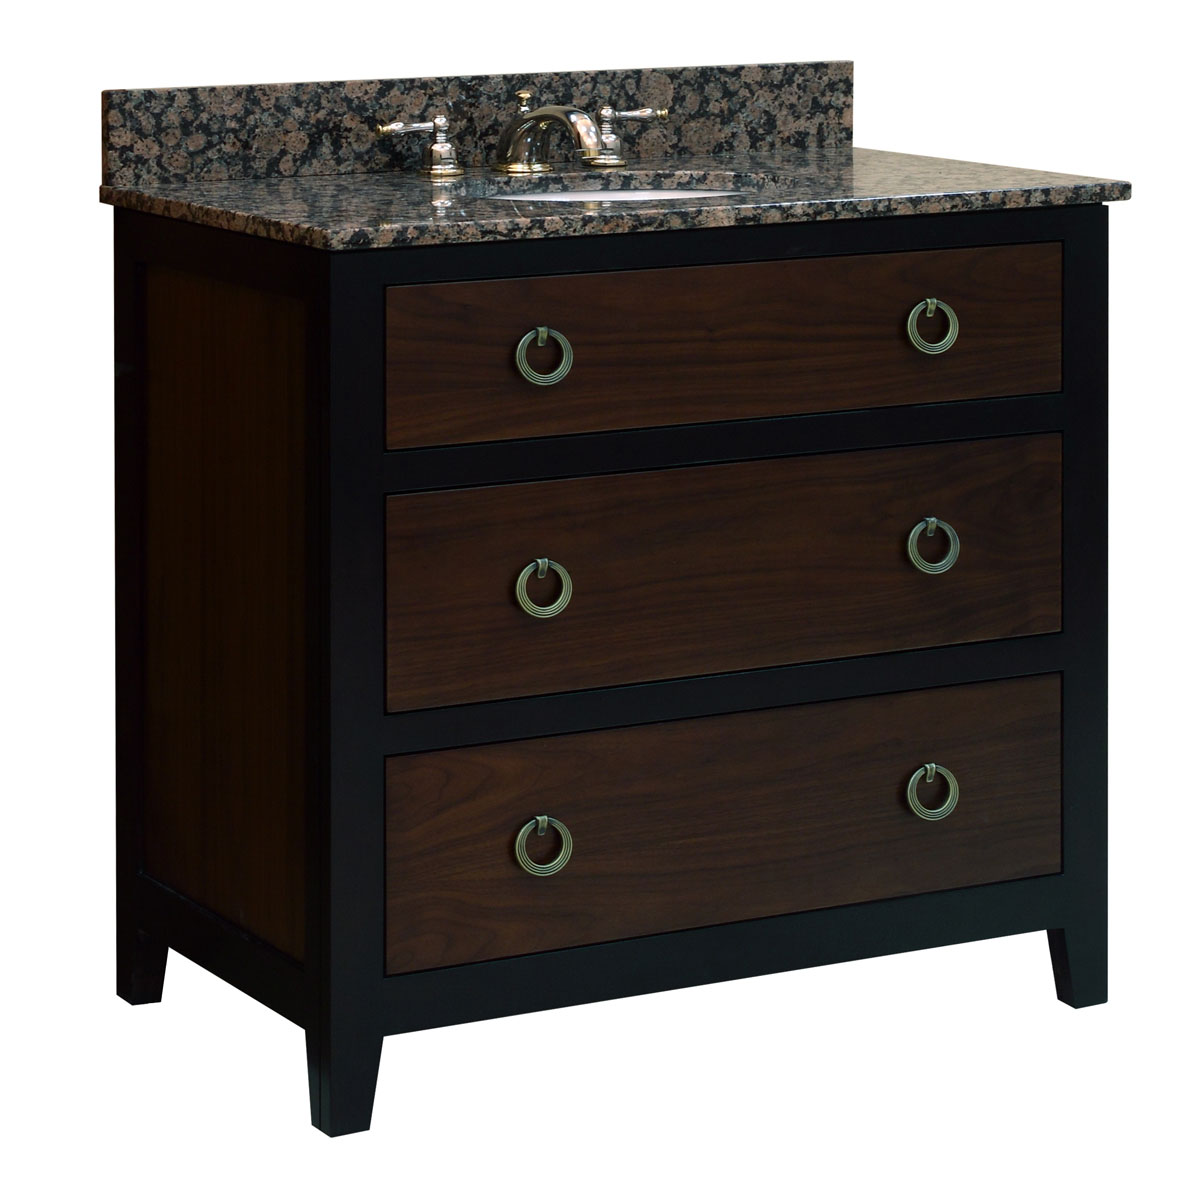 "36"" Urban Walnut Single Vanity - with optional top"